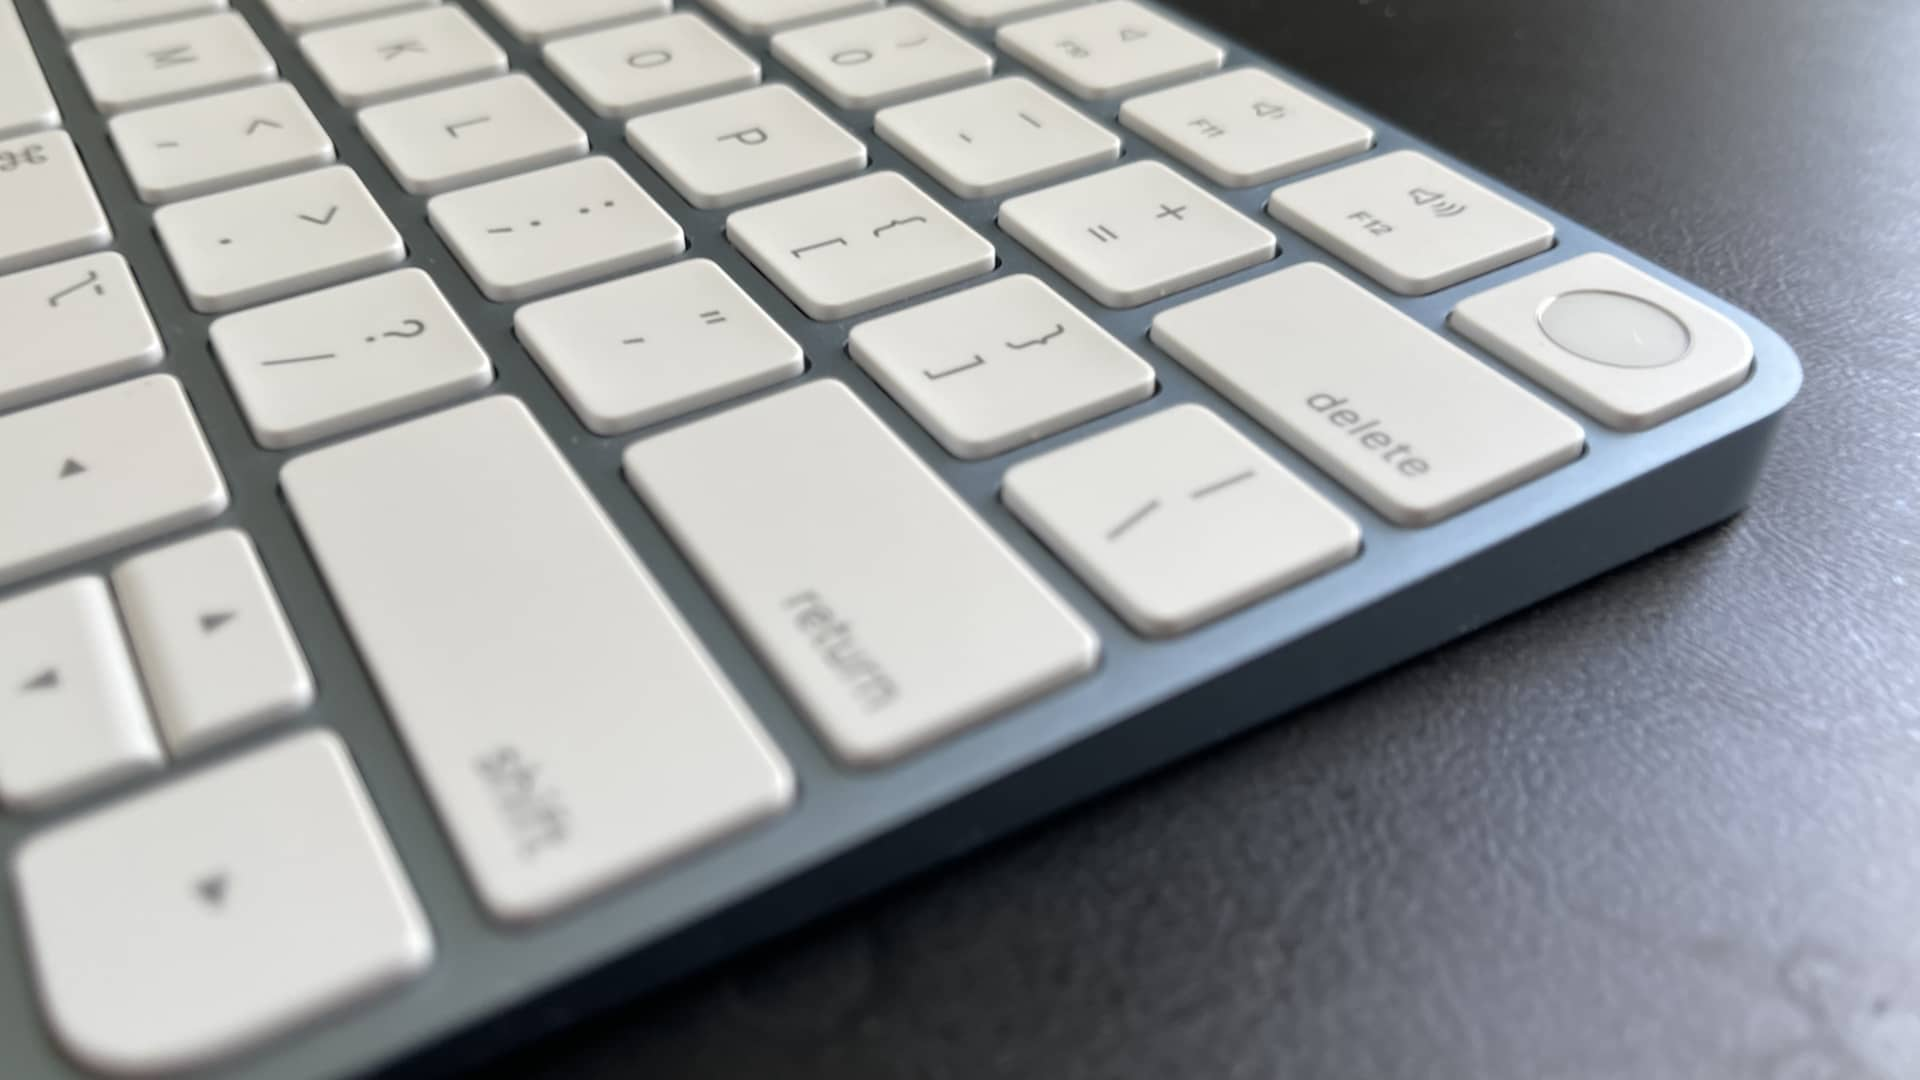 Apple iMac M1 2021 Magic Keyboard with Touch ID.